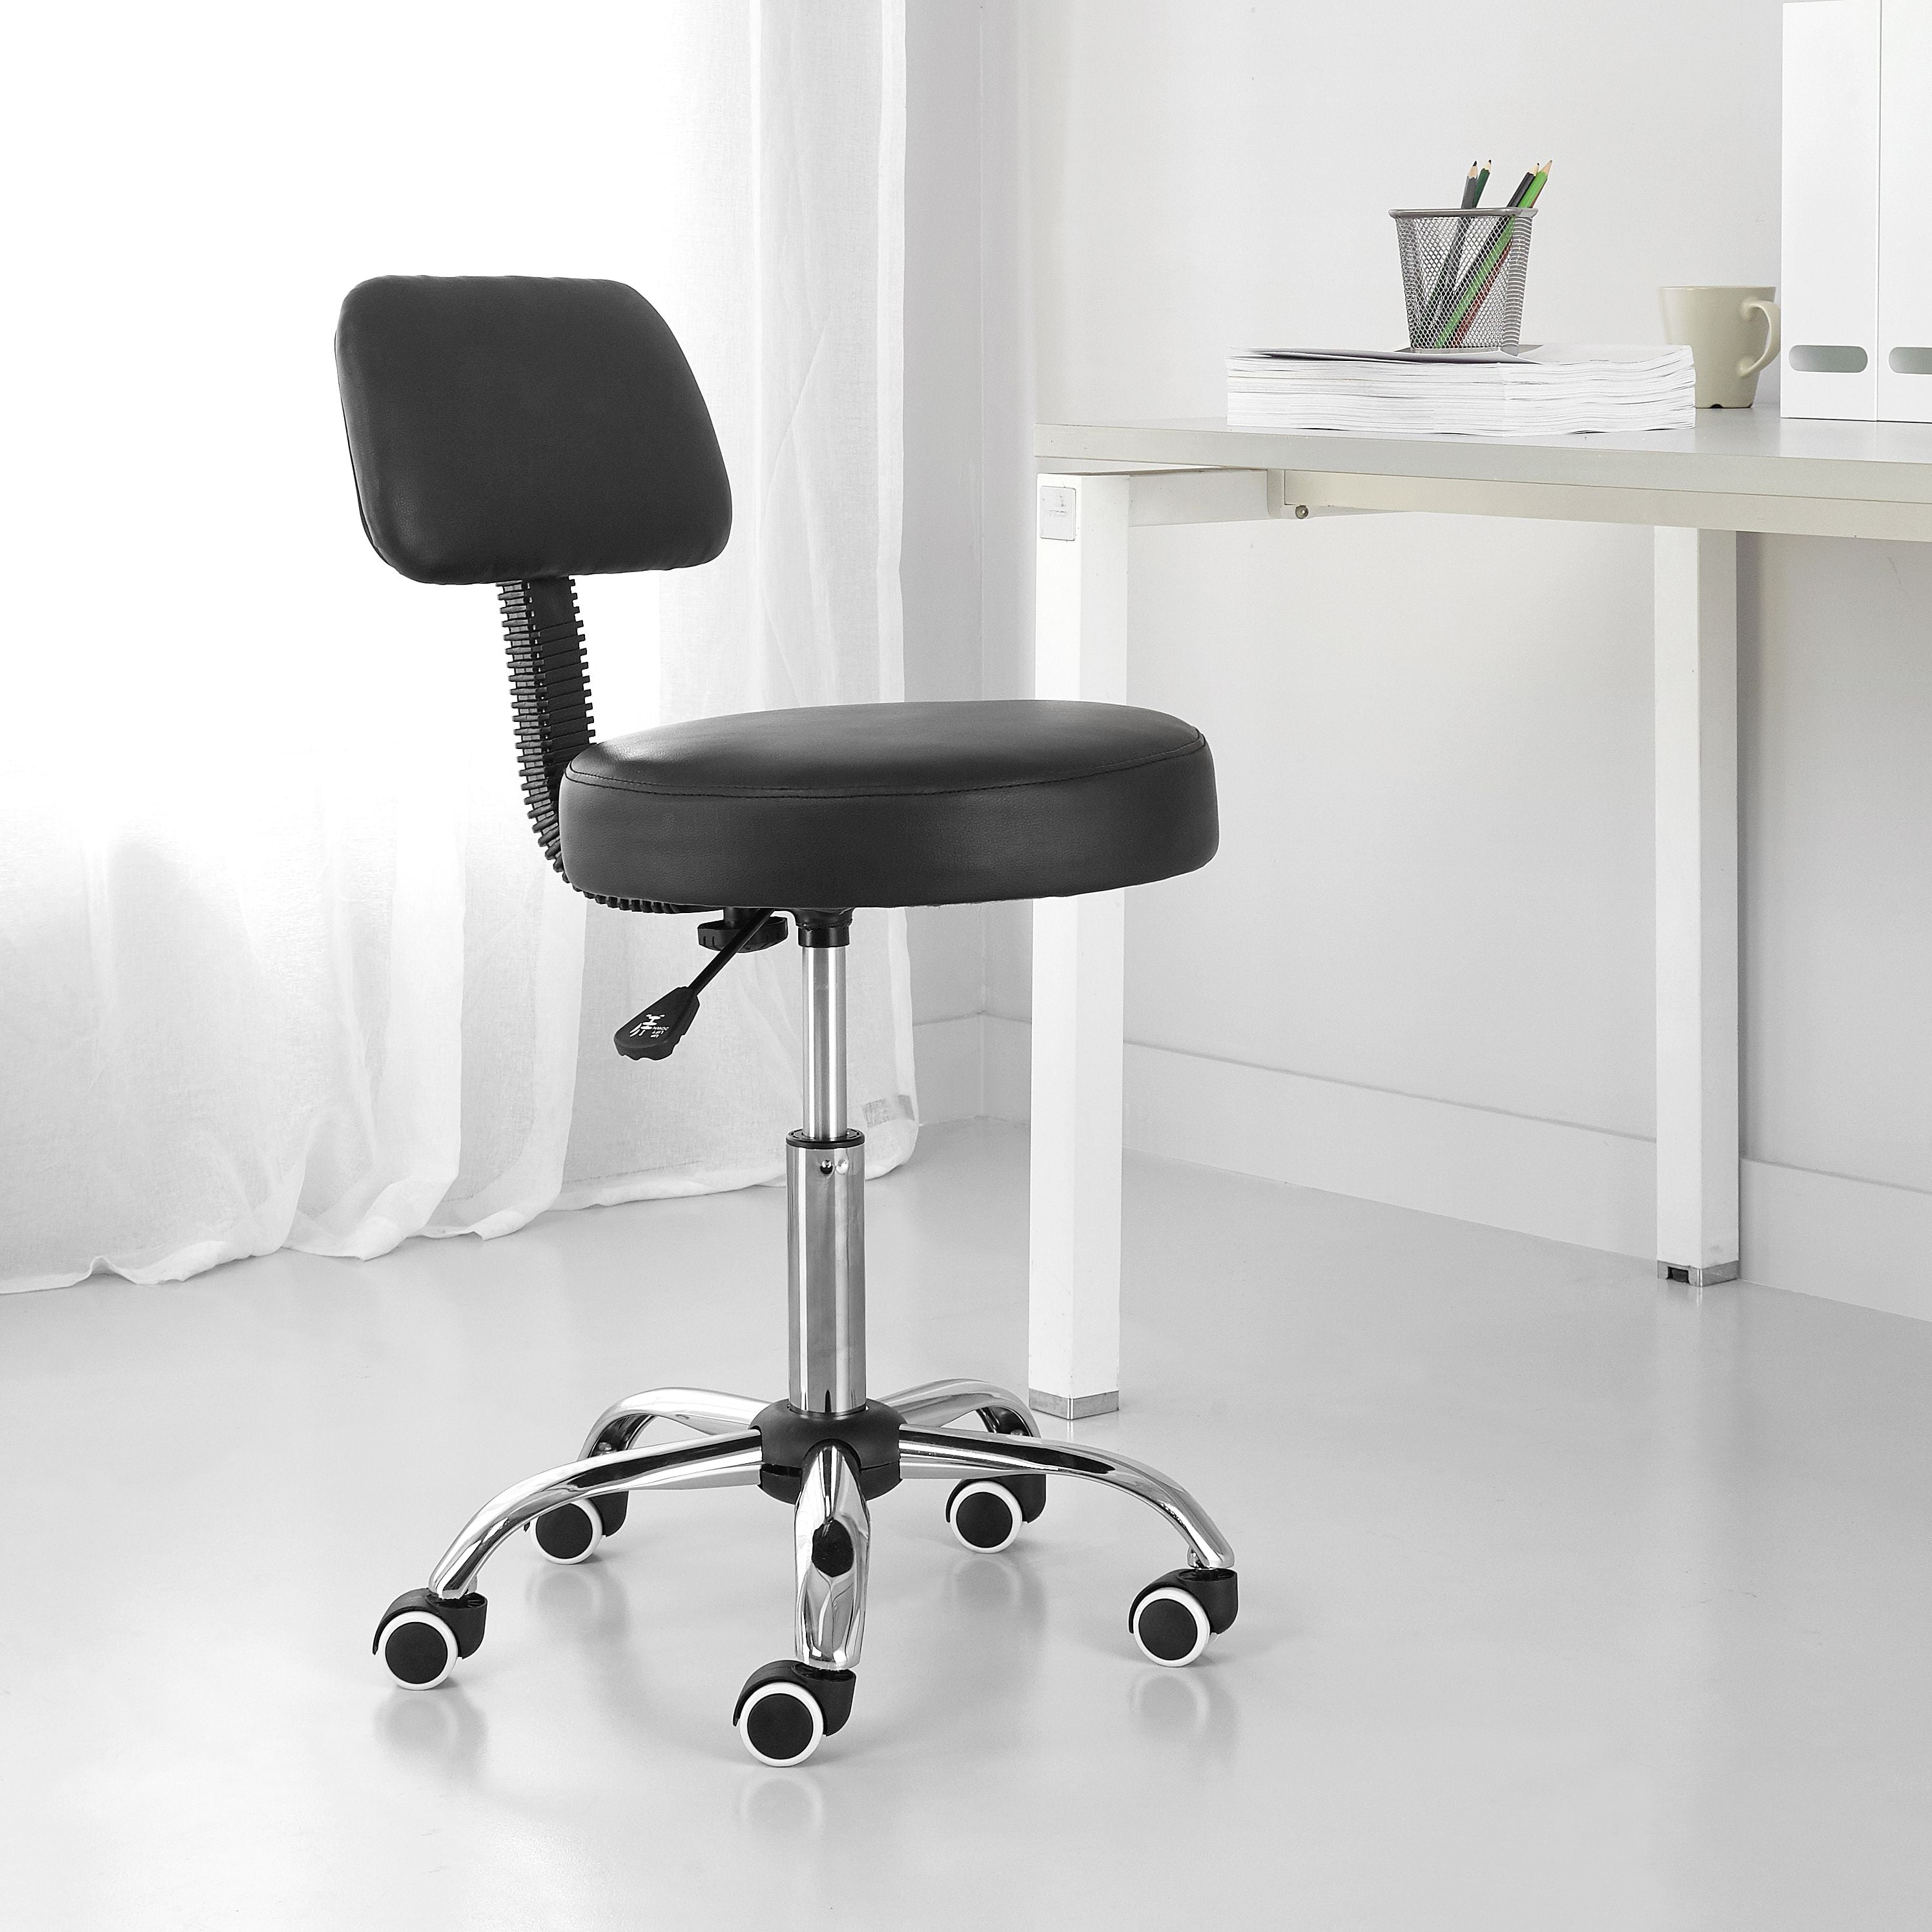 Image of: Mainstays High Back Faux Leather Rolling Office Chair Black Walmart Com Walmart Com